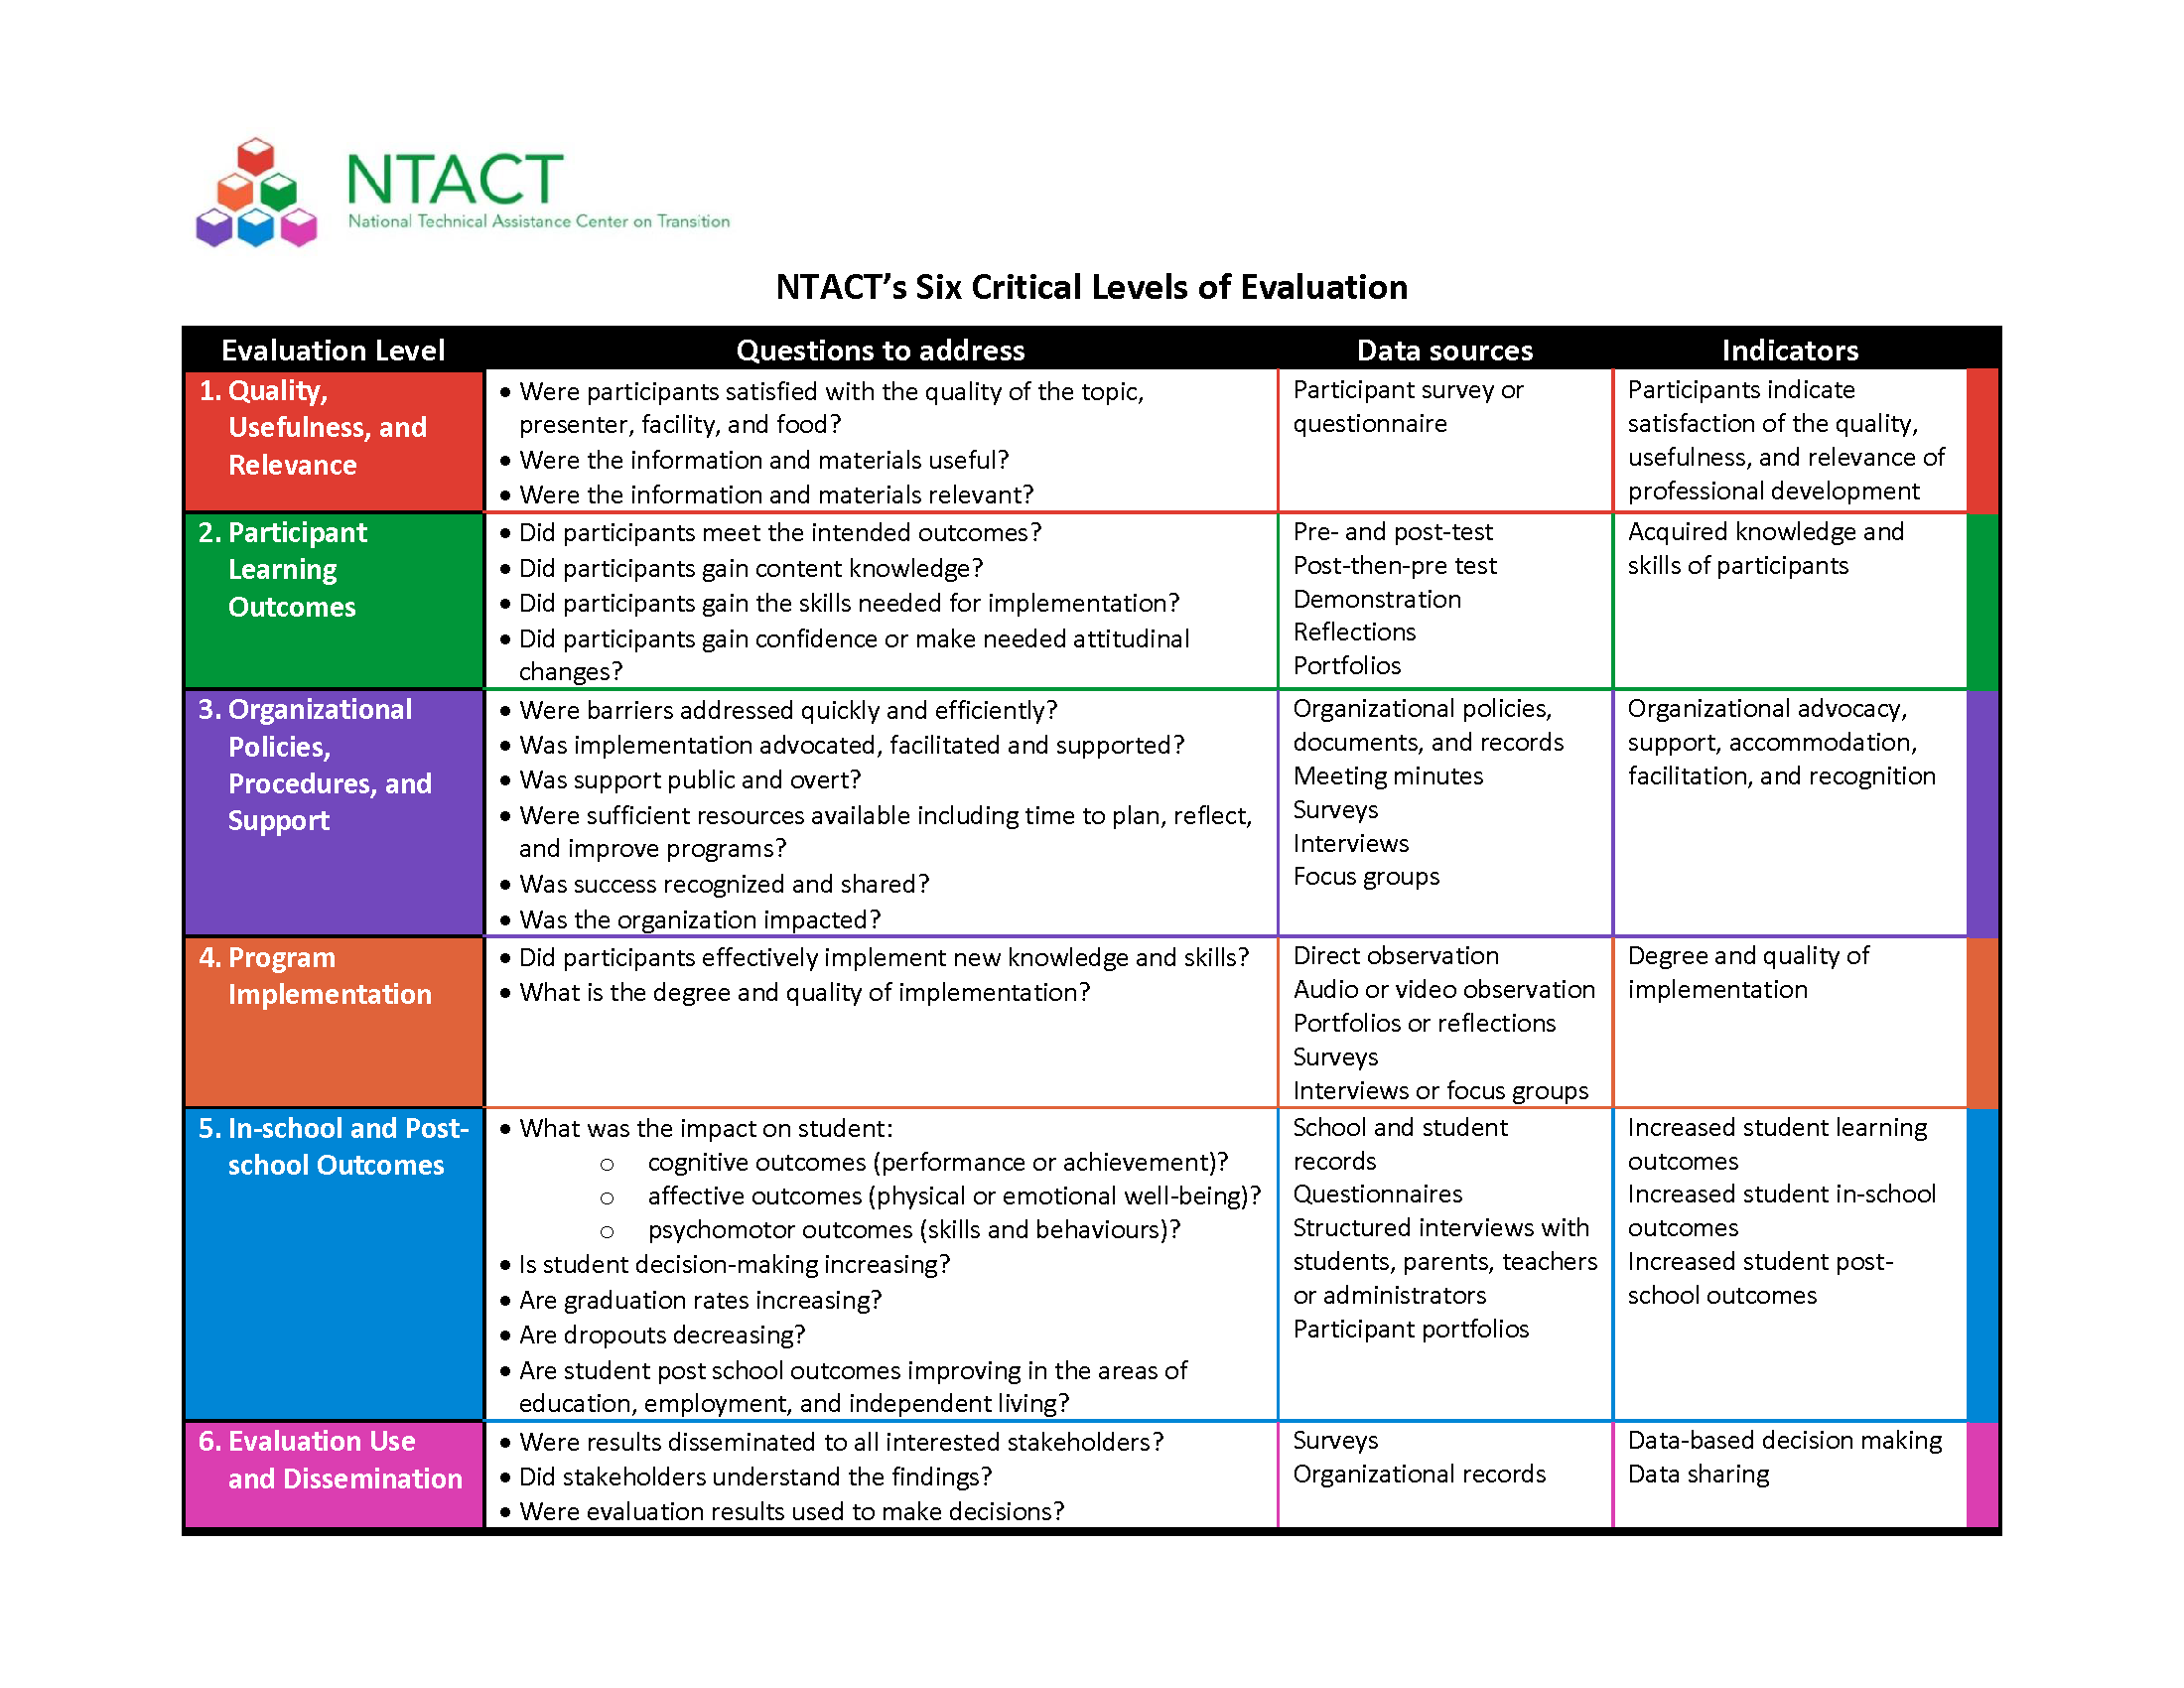 Ntact Uses These Six Levels Of Evaluation To Inform ItS Work With